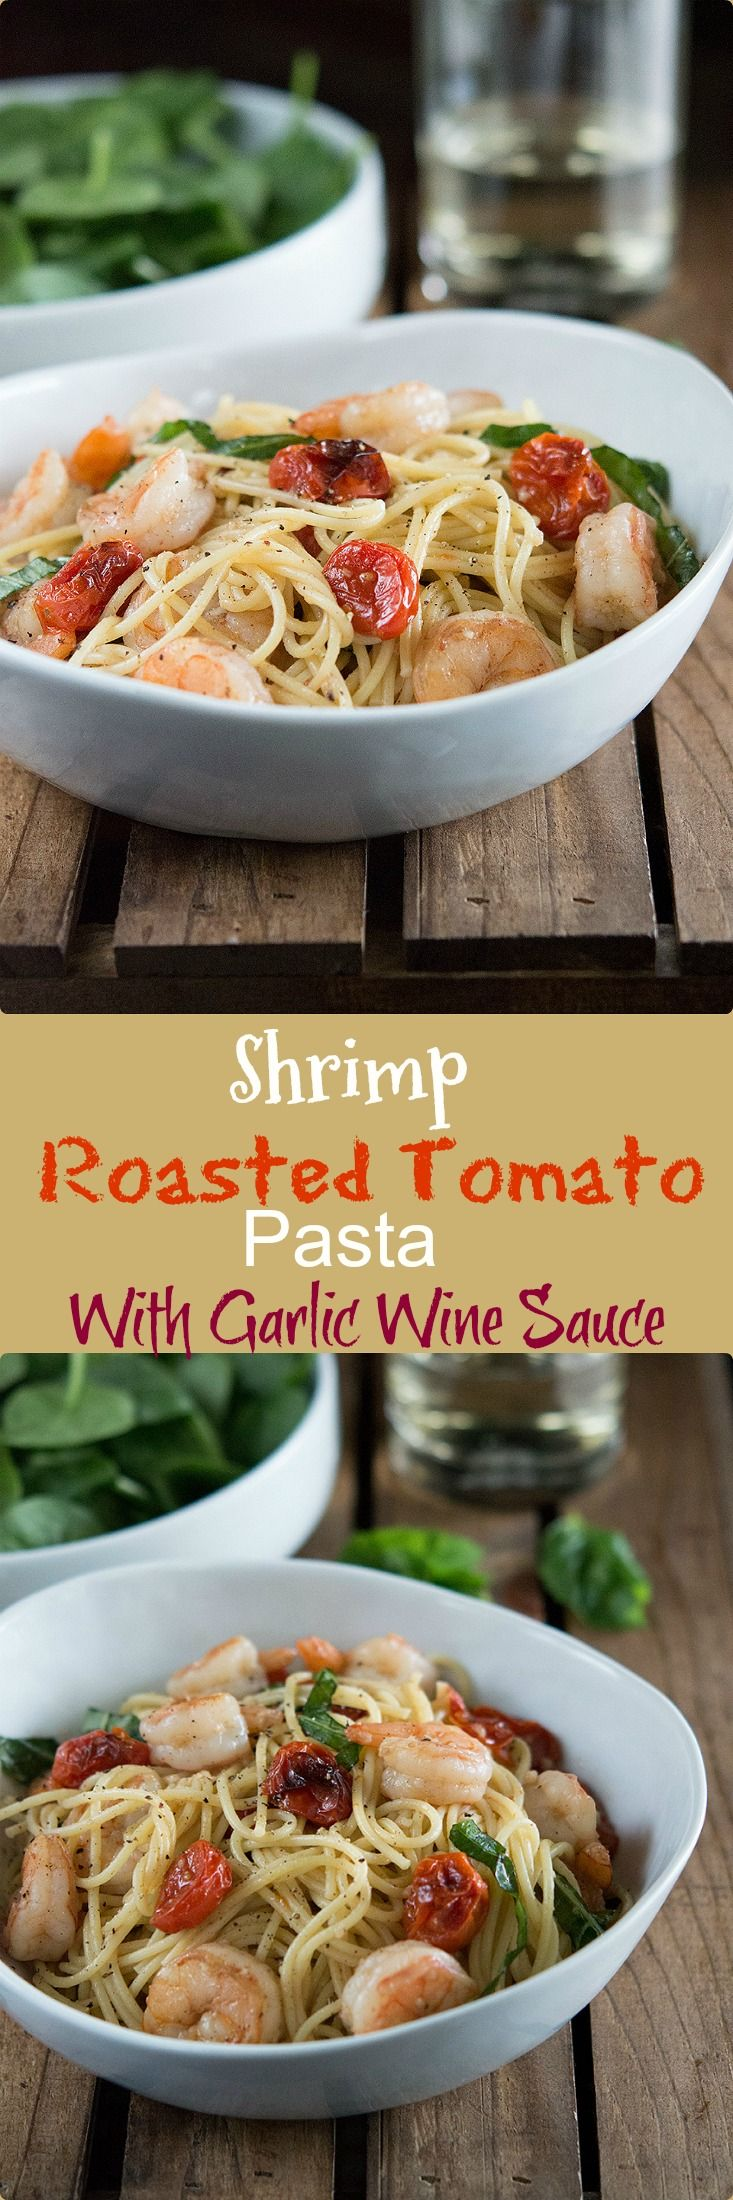 Easy to Make Shrimp and Roasted Tomato Pasta with Garlic Wine Sauce.